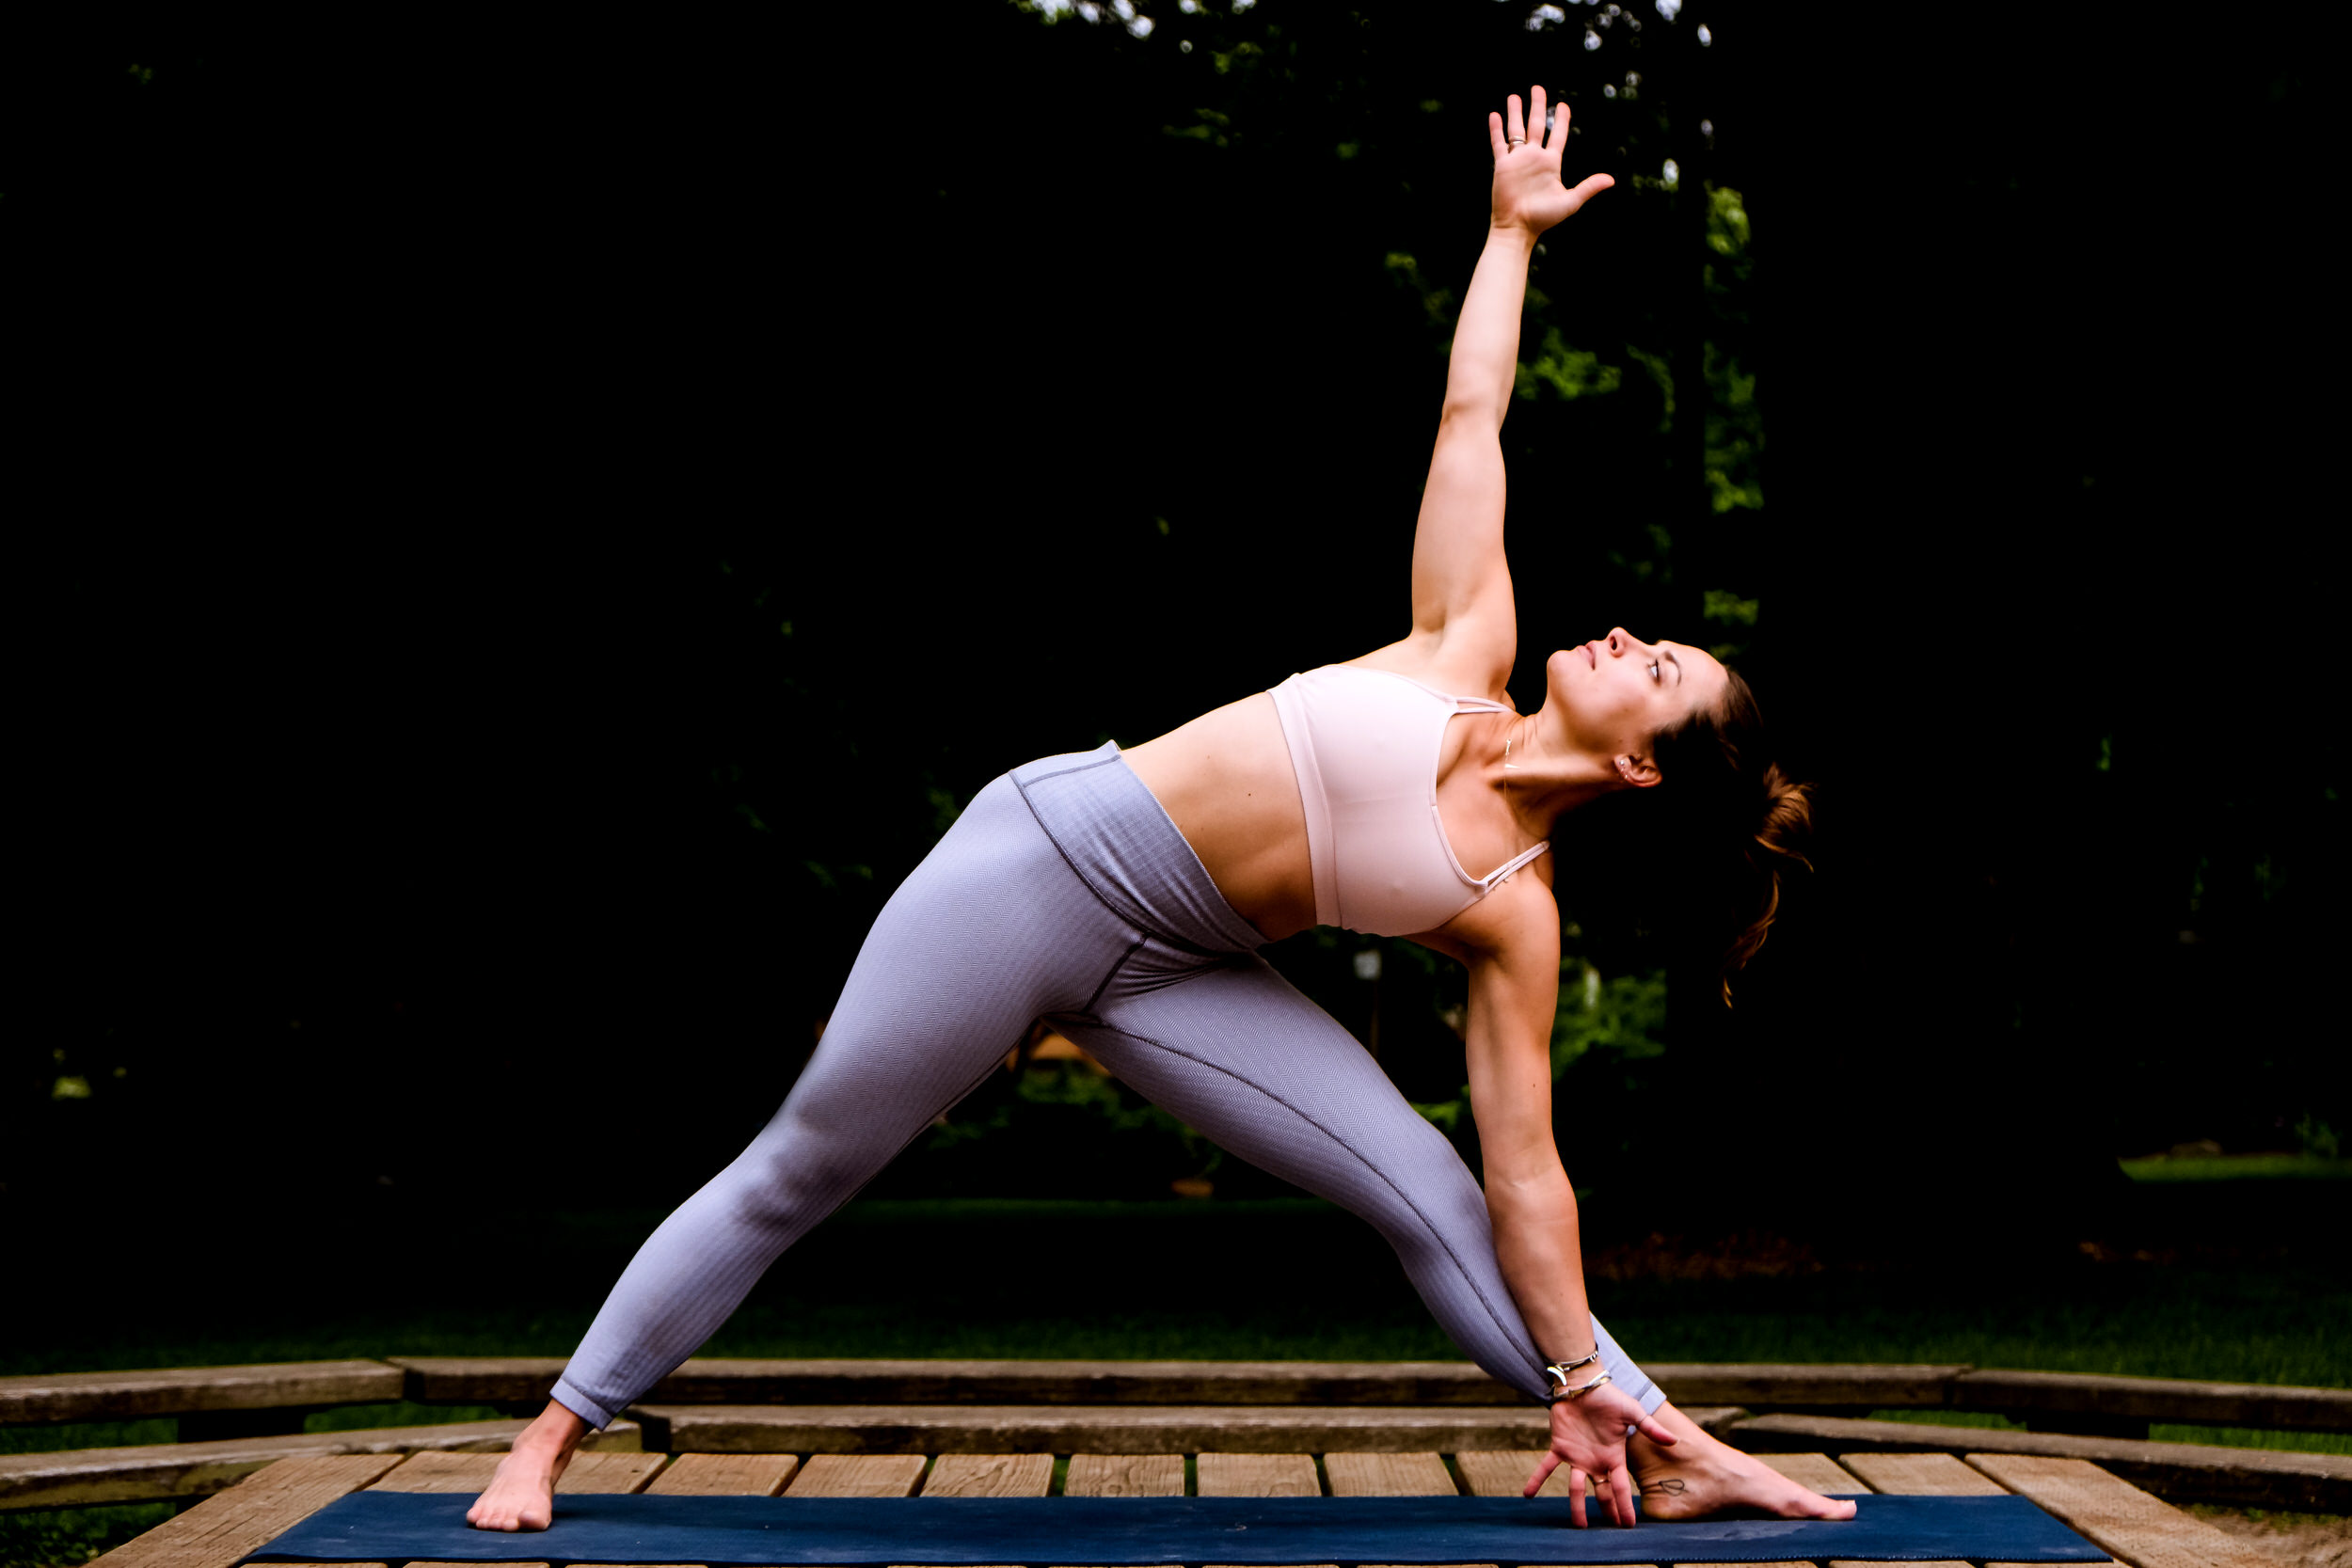 Wedding Day Yoga Poses: How to do Side Stretch. Wedding Day Yoga Poses are a series of yoga poses to help calm your nerves, center yourself and open your heart.